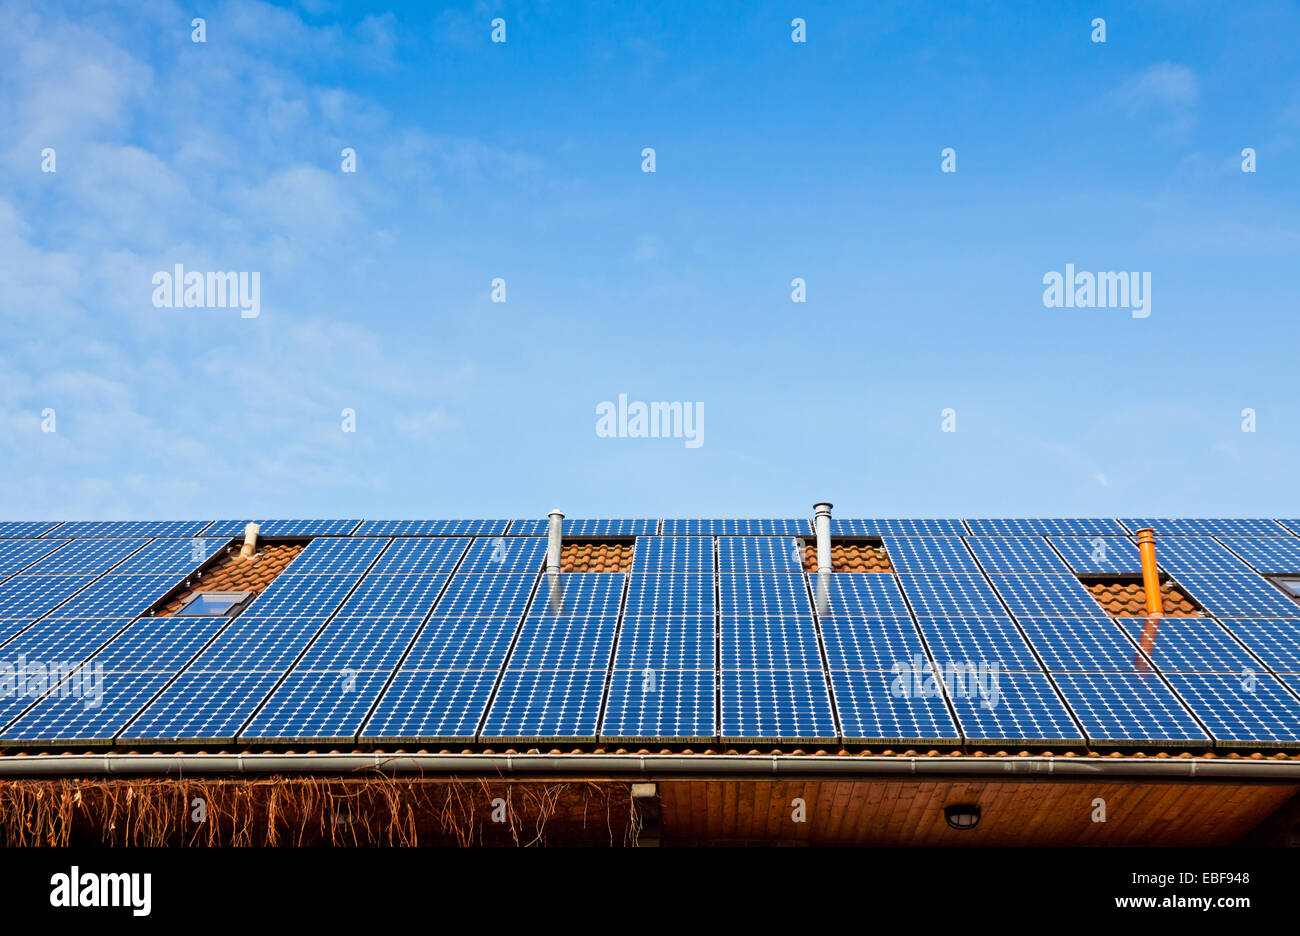 Solar panels installed on the roof of building - Stock Image